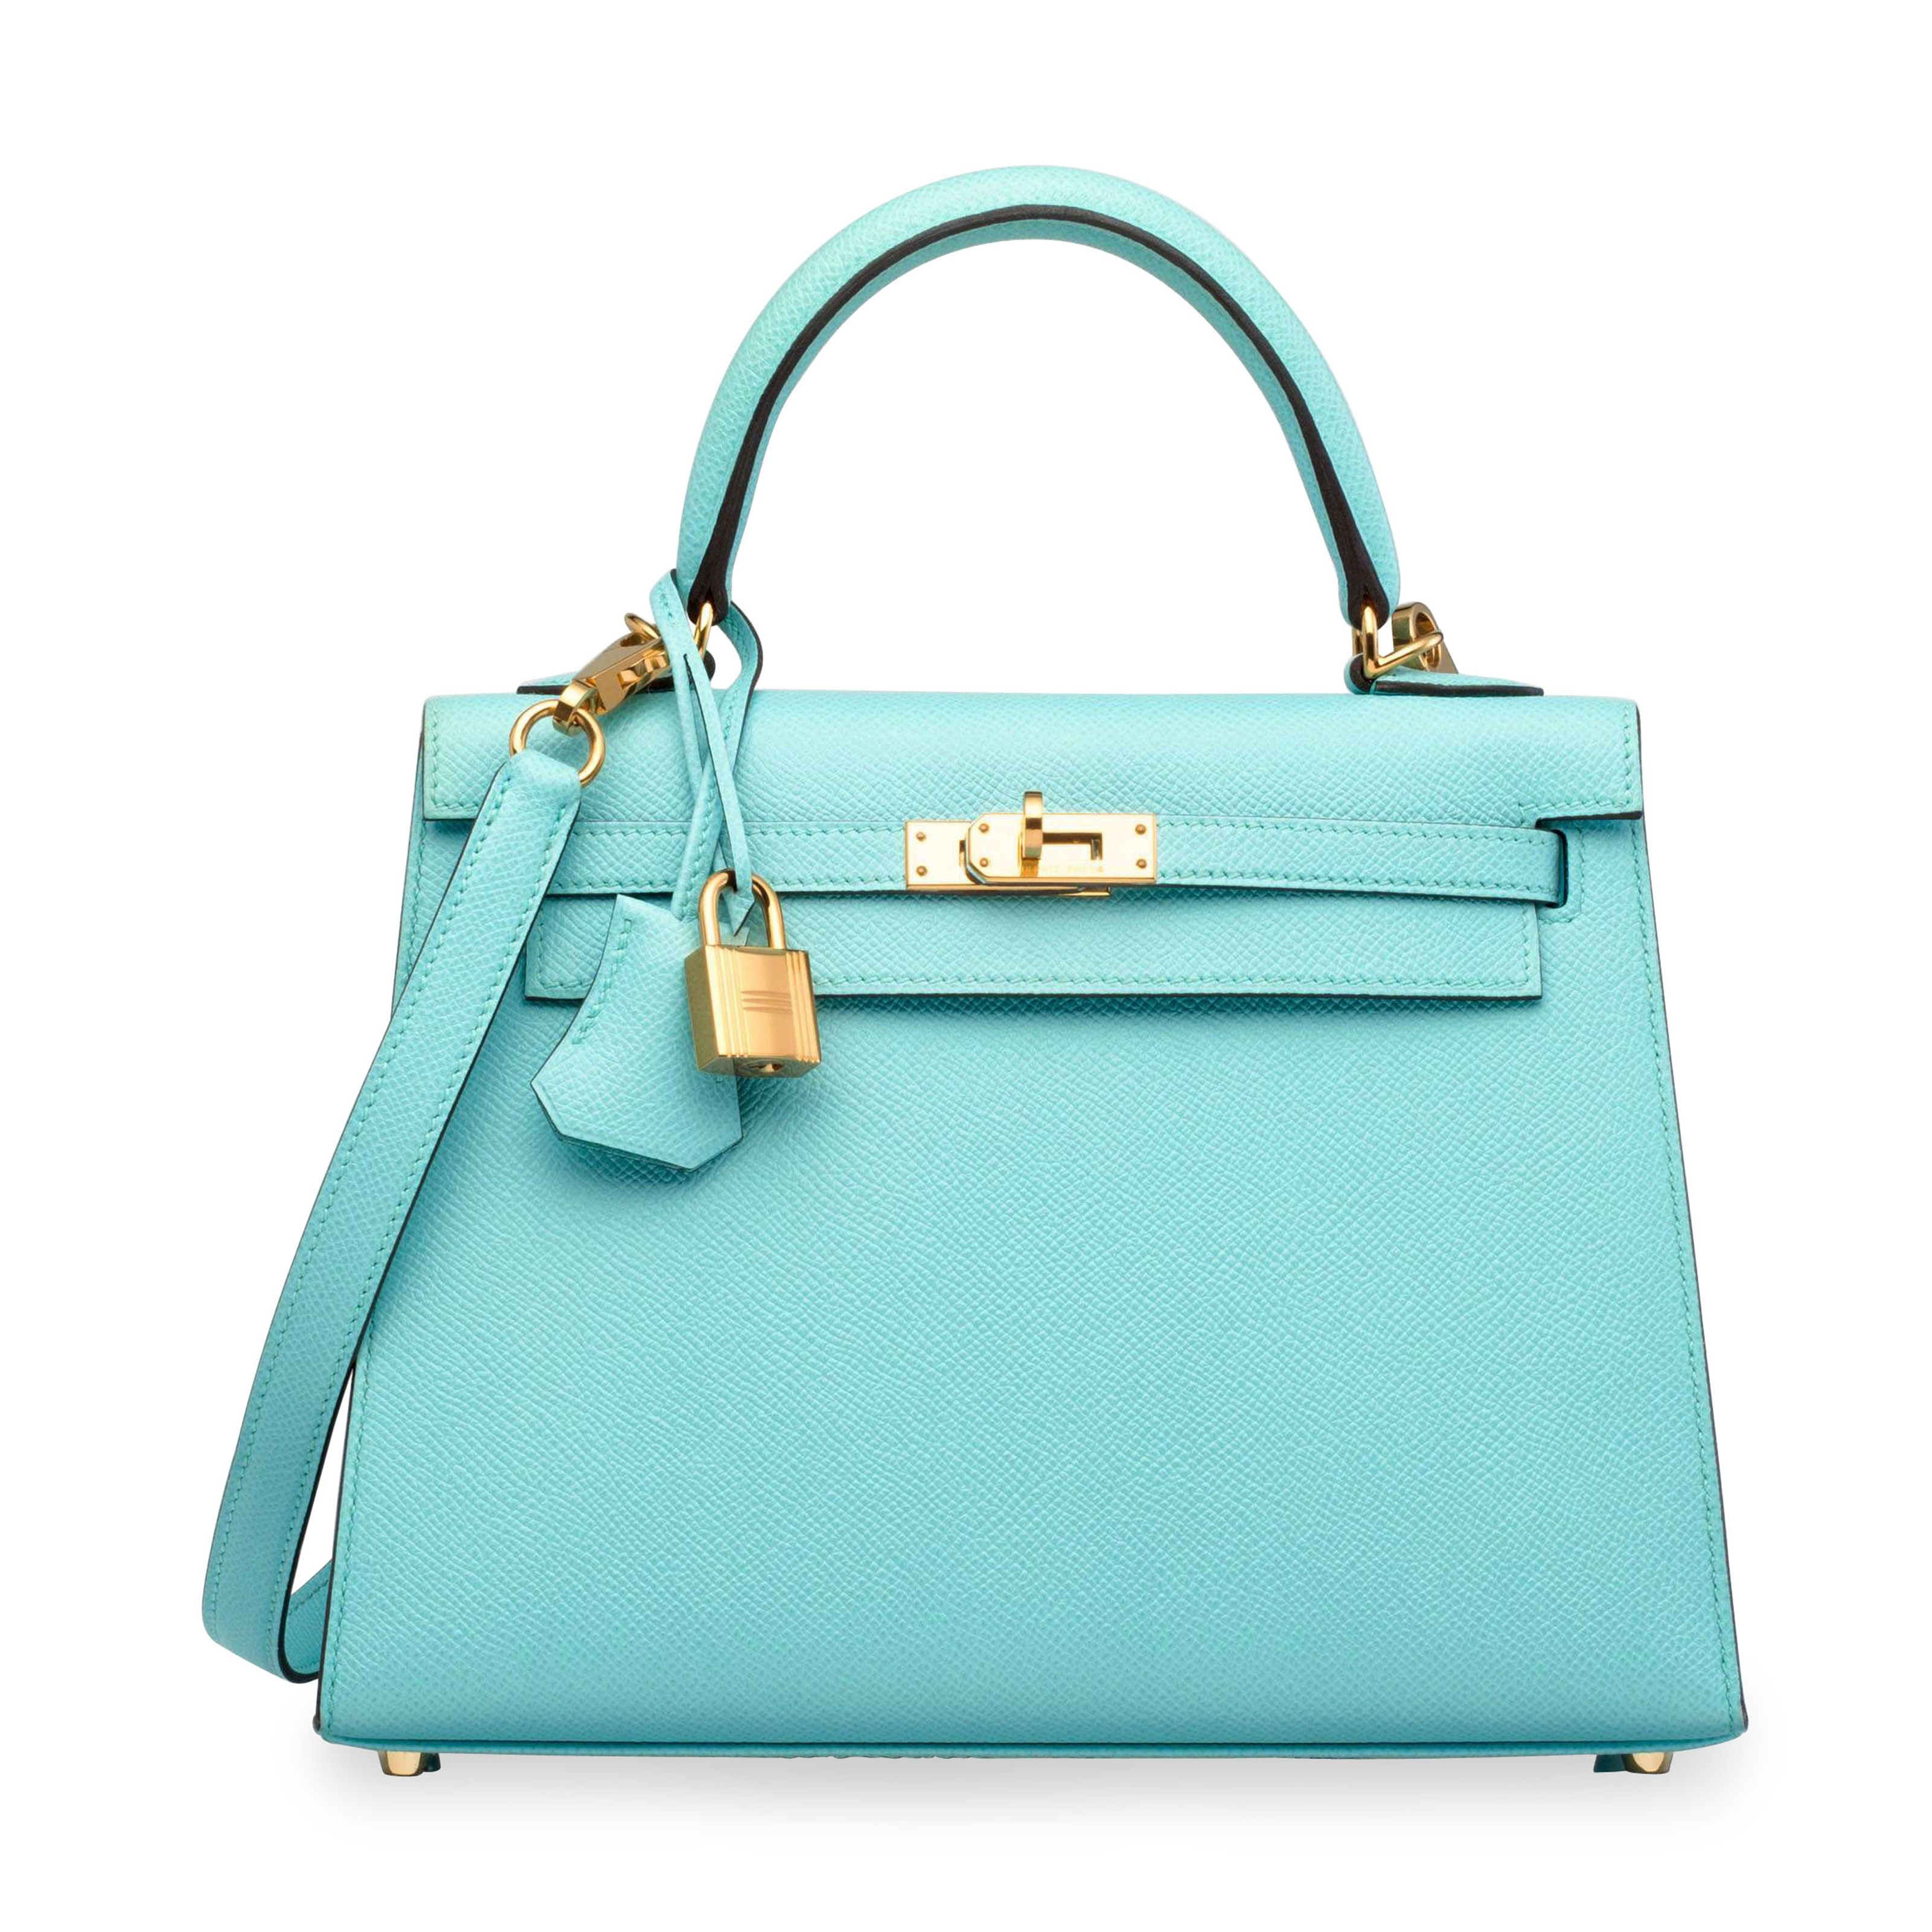 af9dc834e418 A bleu atoll epsom leather sellier kelly 25 with gold hardware ...